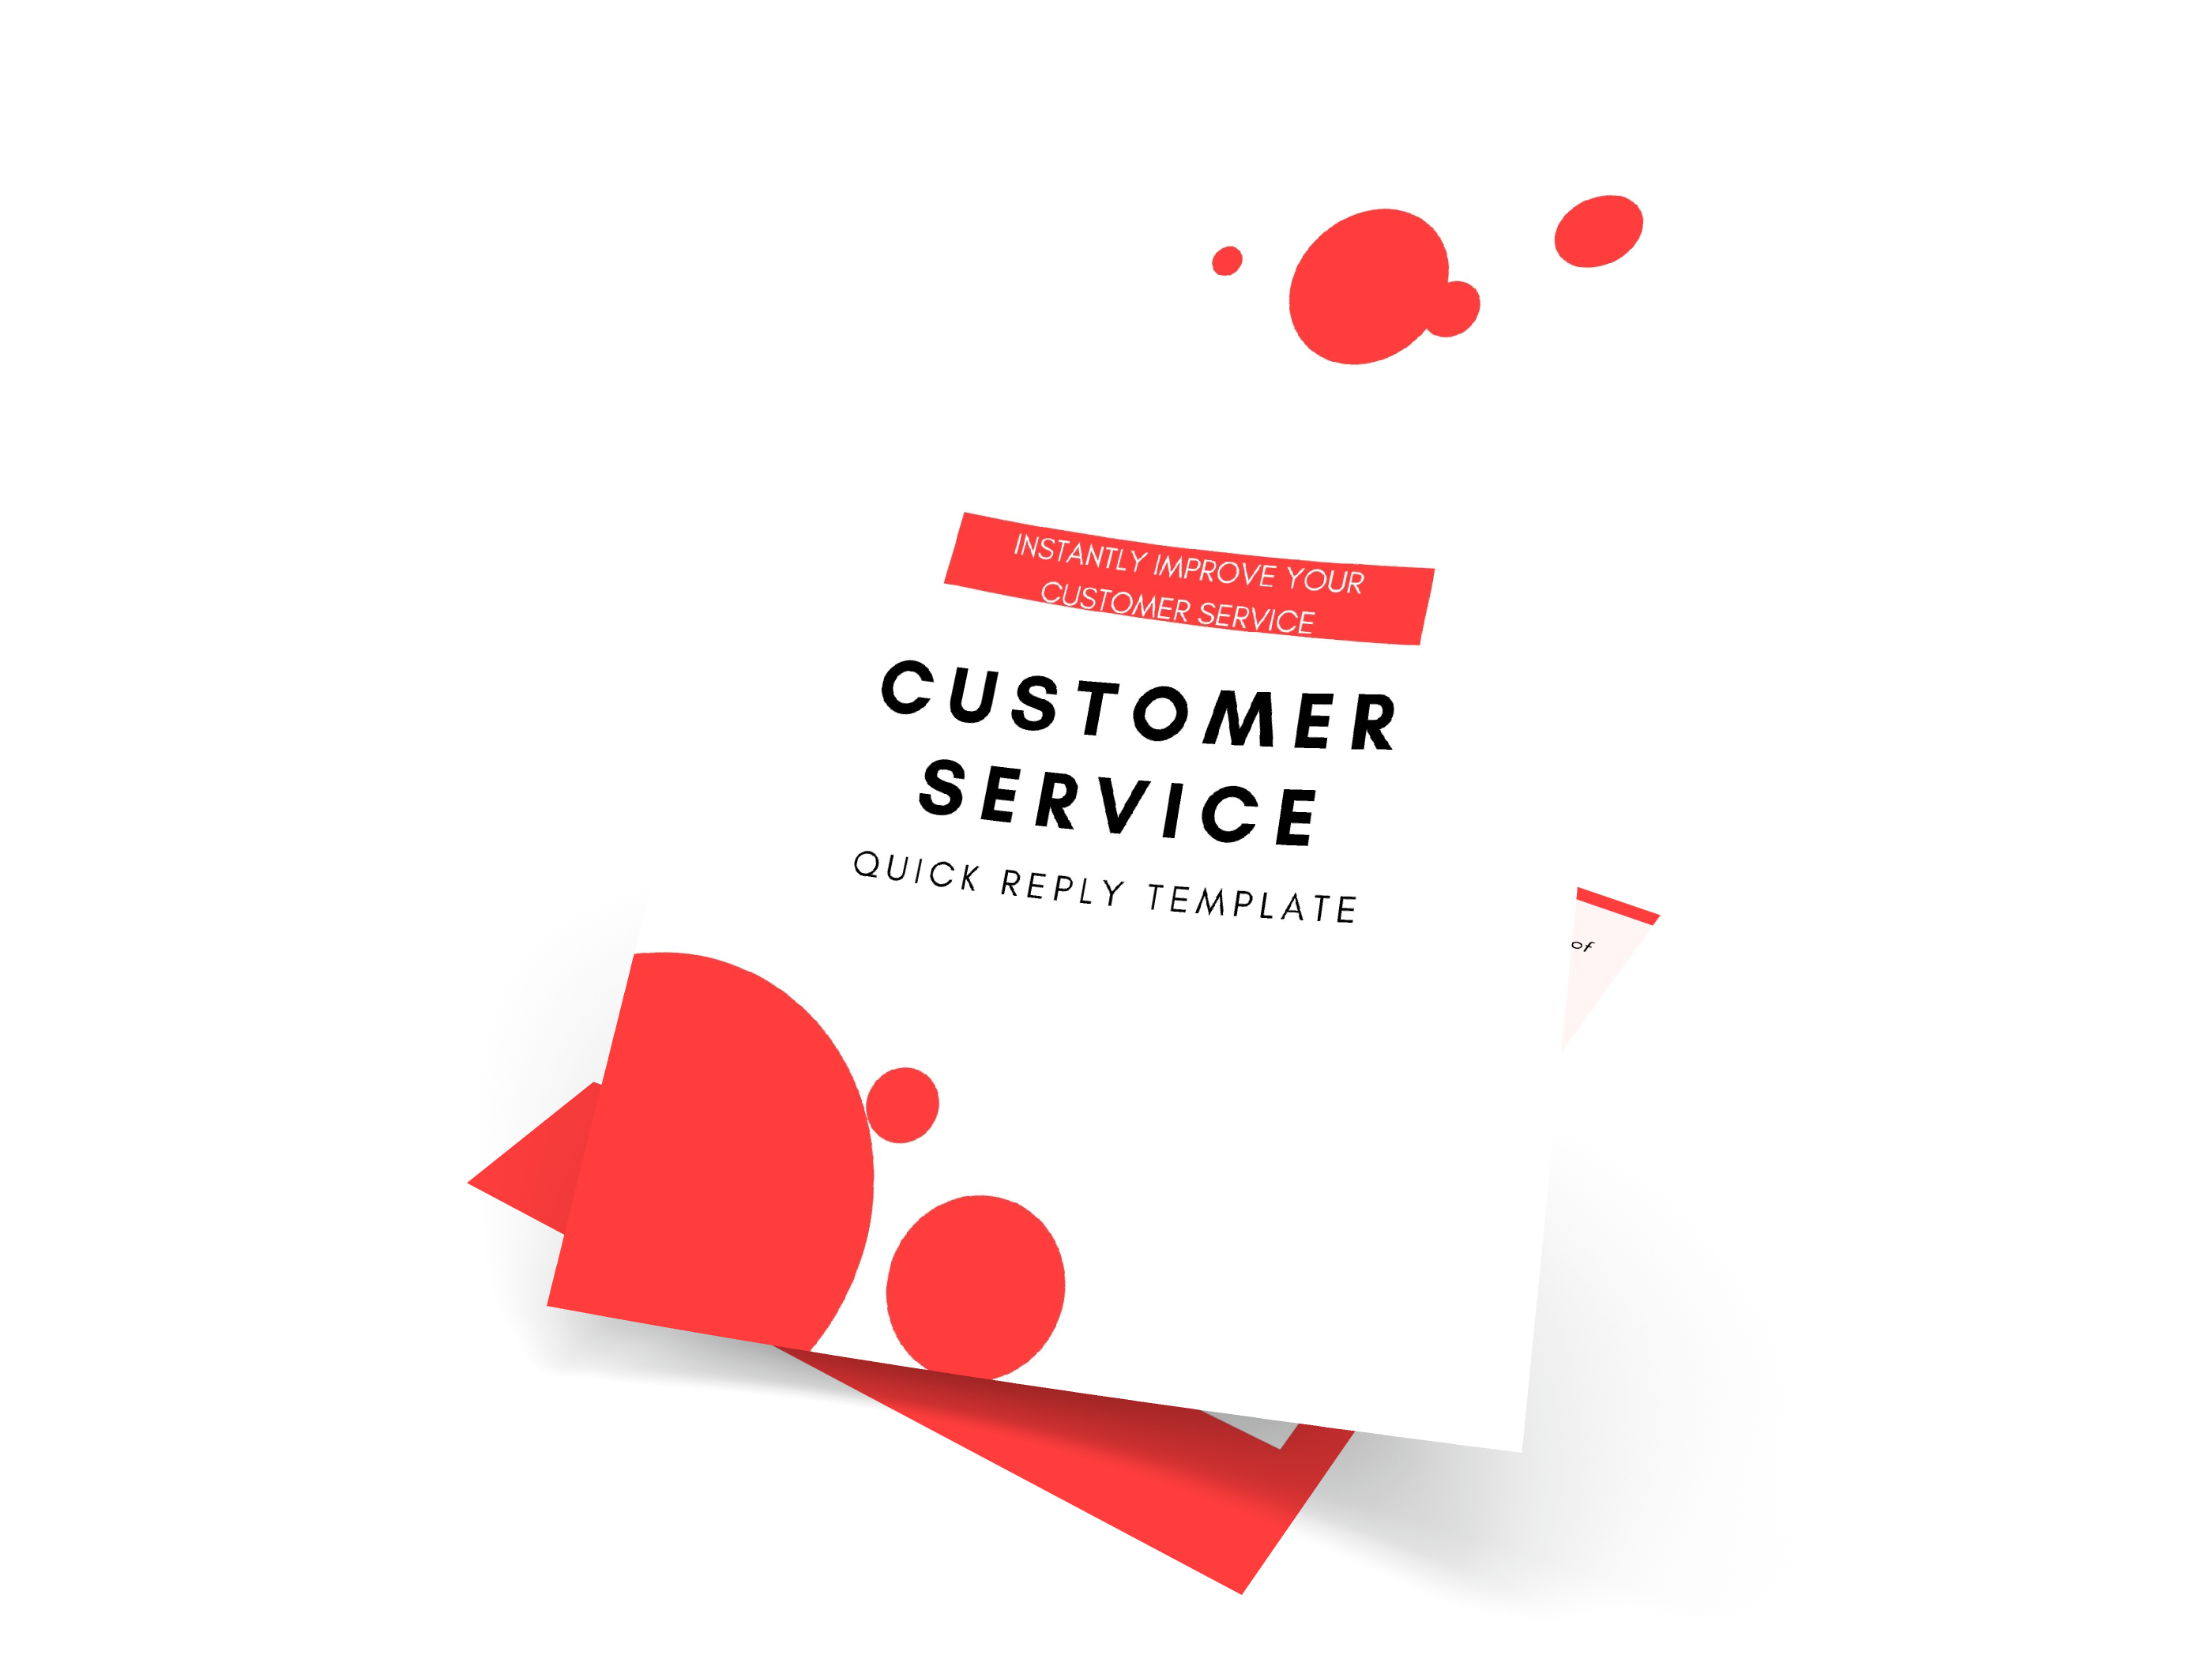 CUSTOMER SERVICE QUICK REPLY TEMPLATE